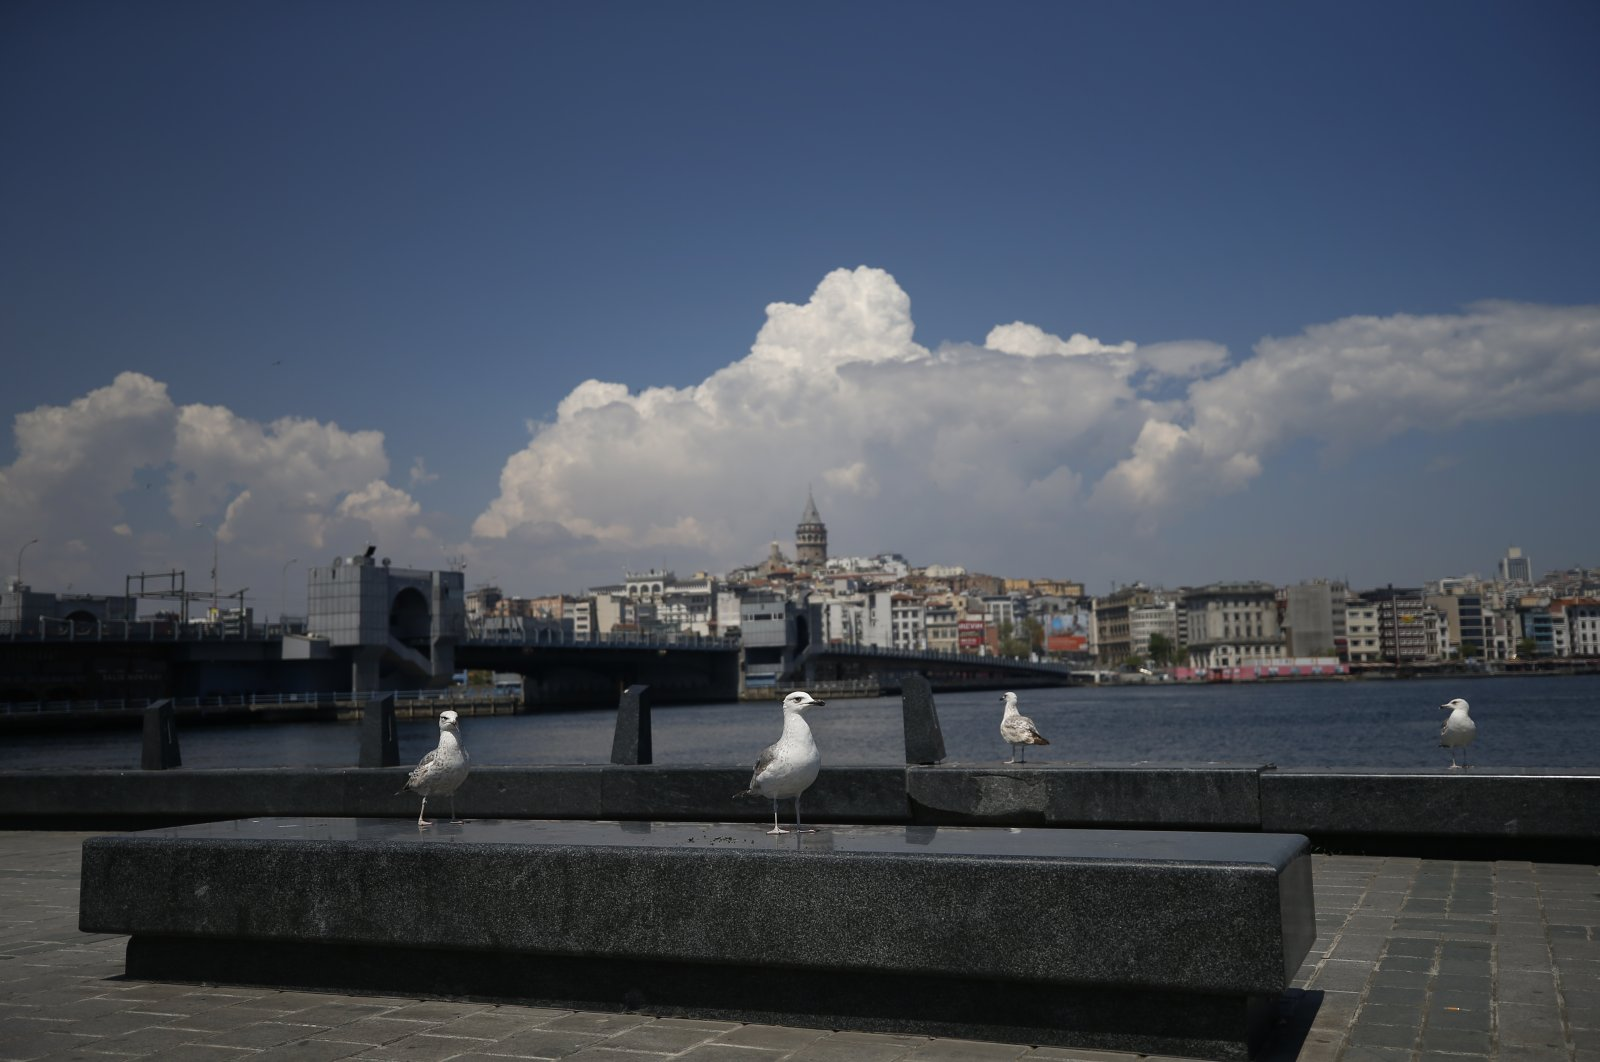 Seagulls are seen by the Golden Horn, deserted due to the coronavirus lockdown, in Istanbul, Turkey, May 1, 2020. (AP Photo)